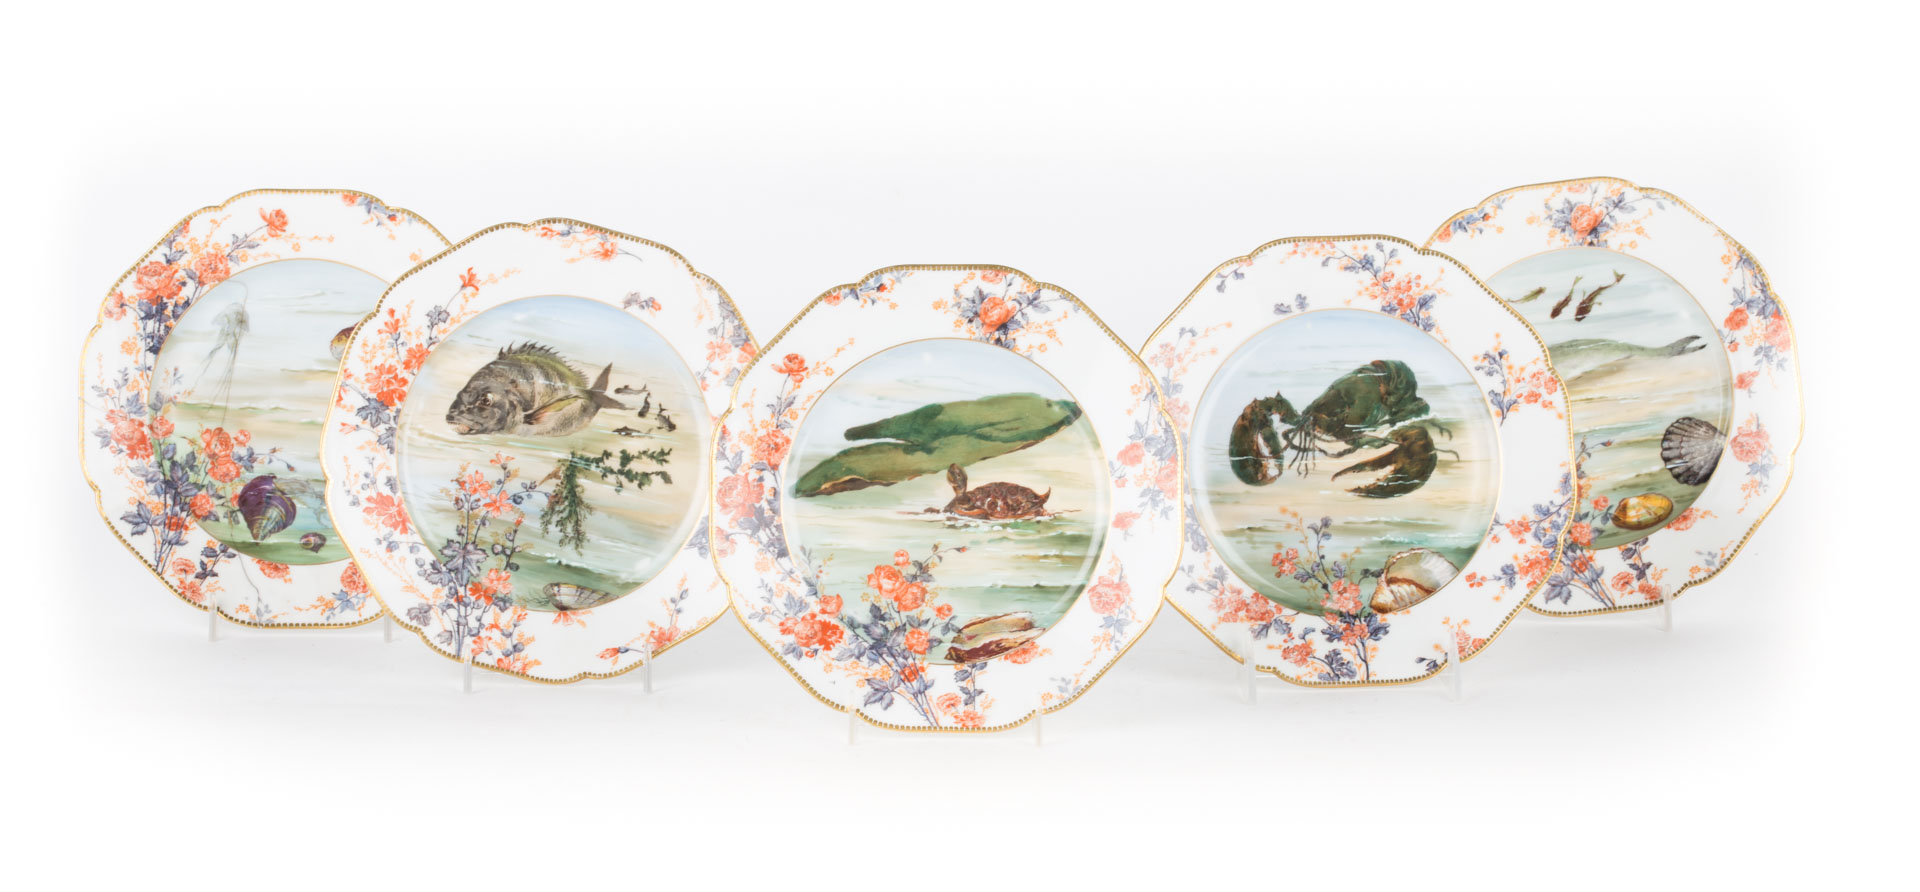 Limoges painted porcelain fish plates